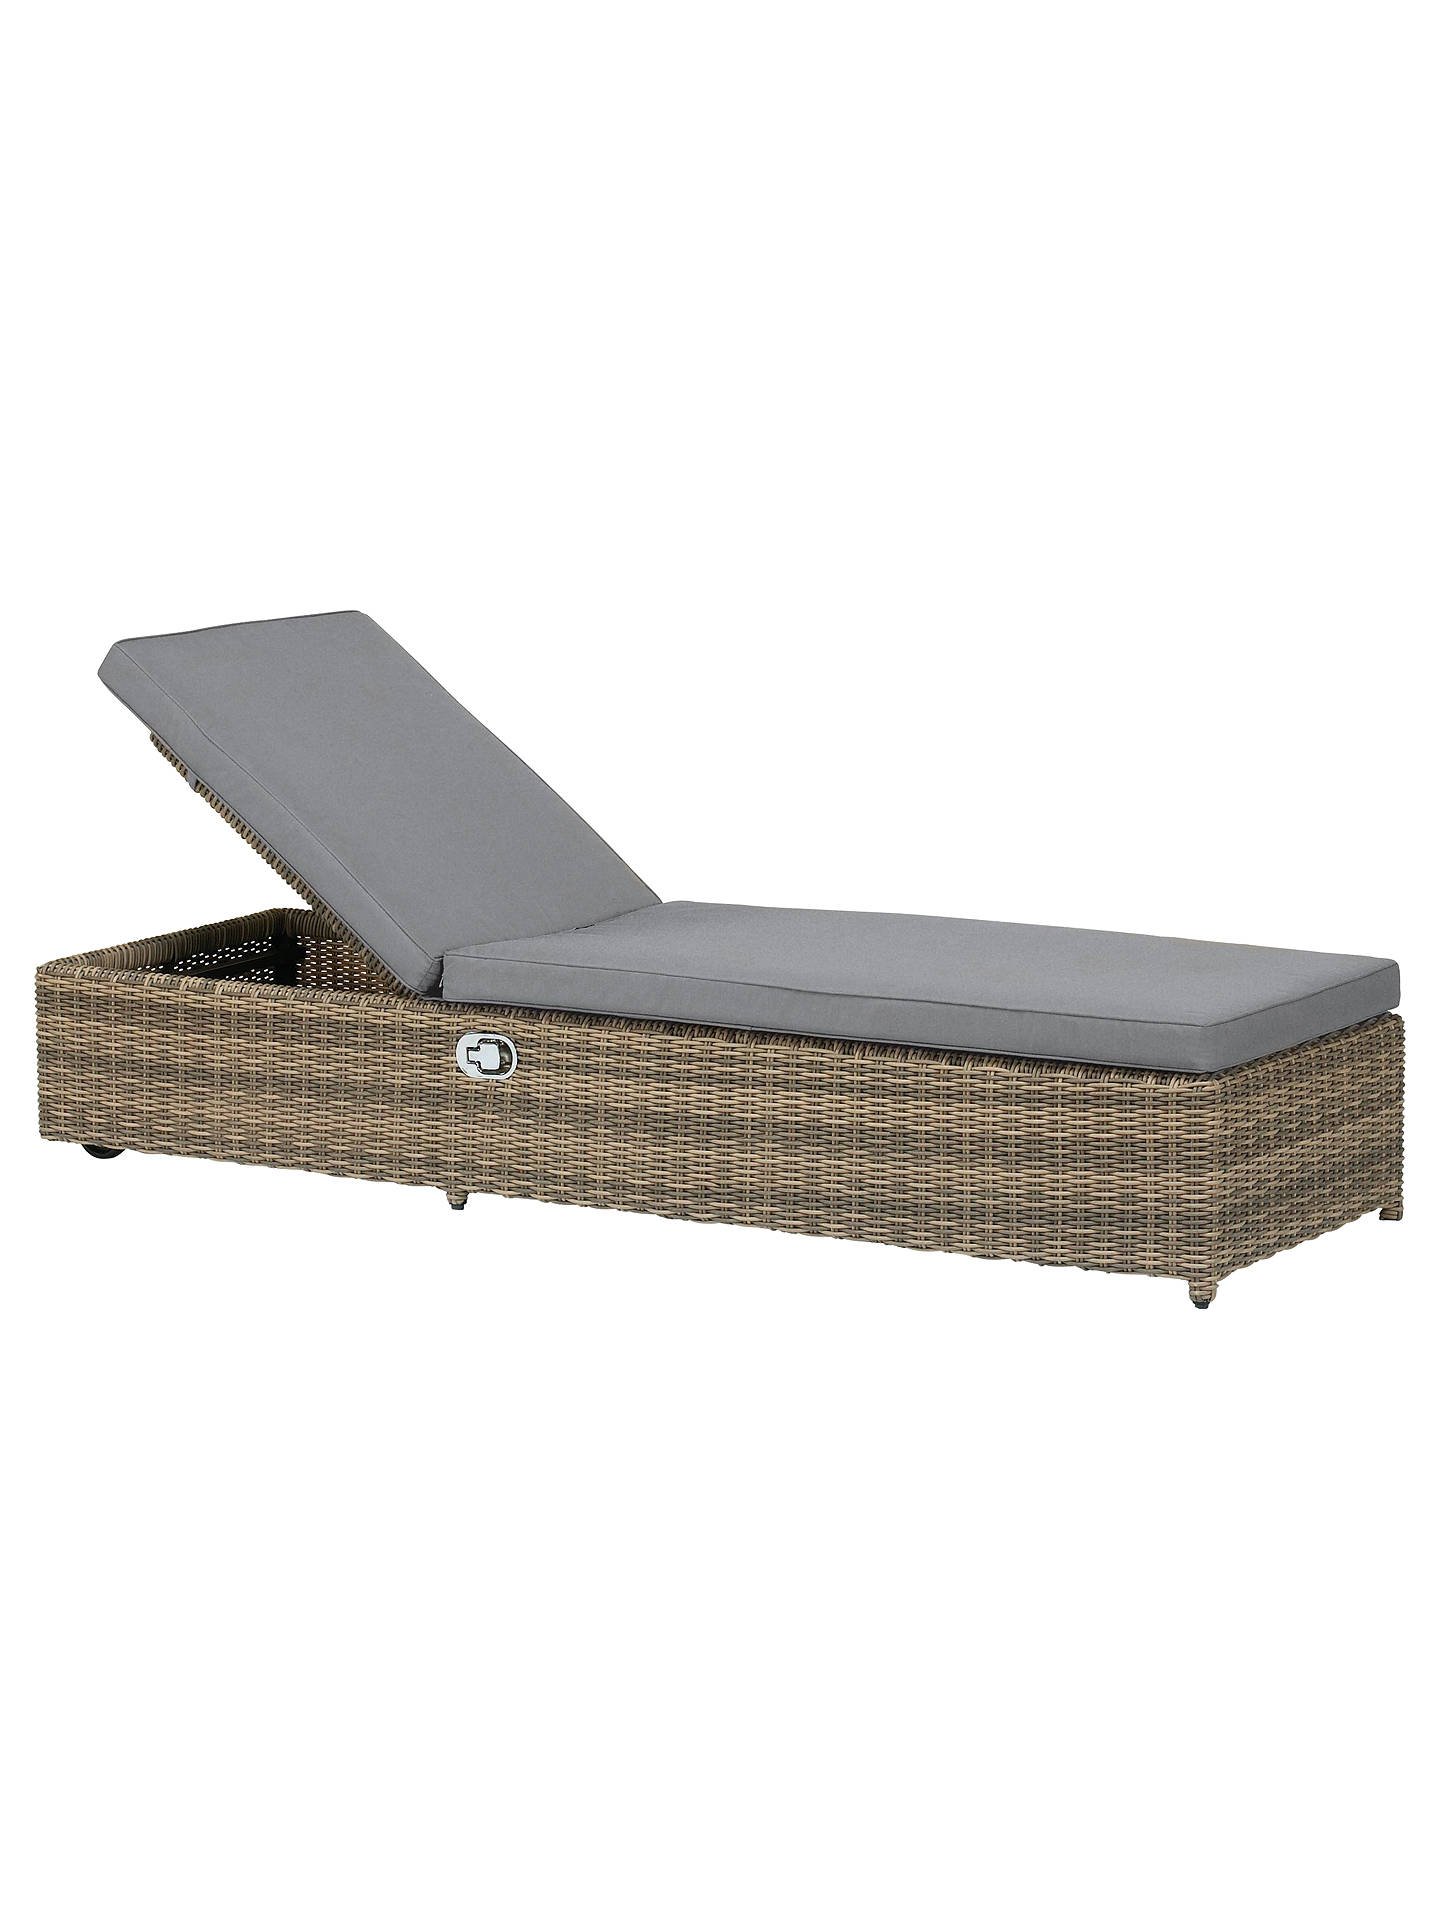 Buy Royalcraft Wentworth Sun Lounger Online at johnlewis.com